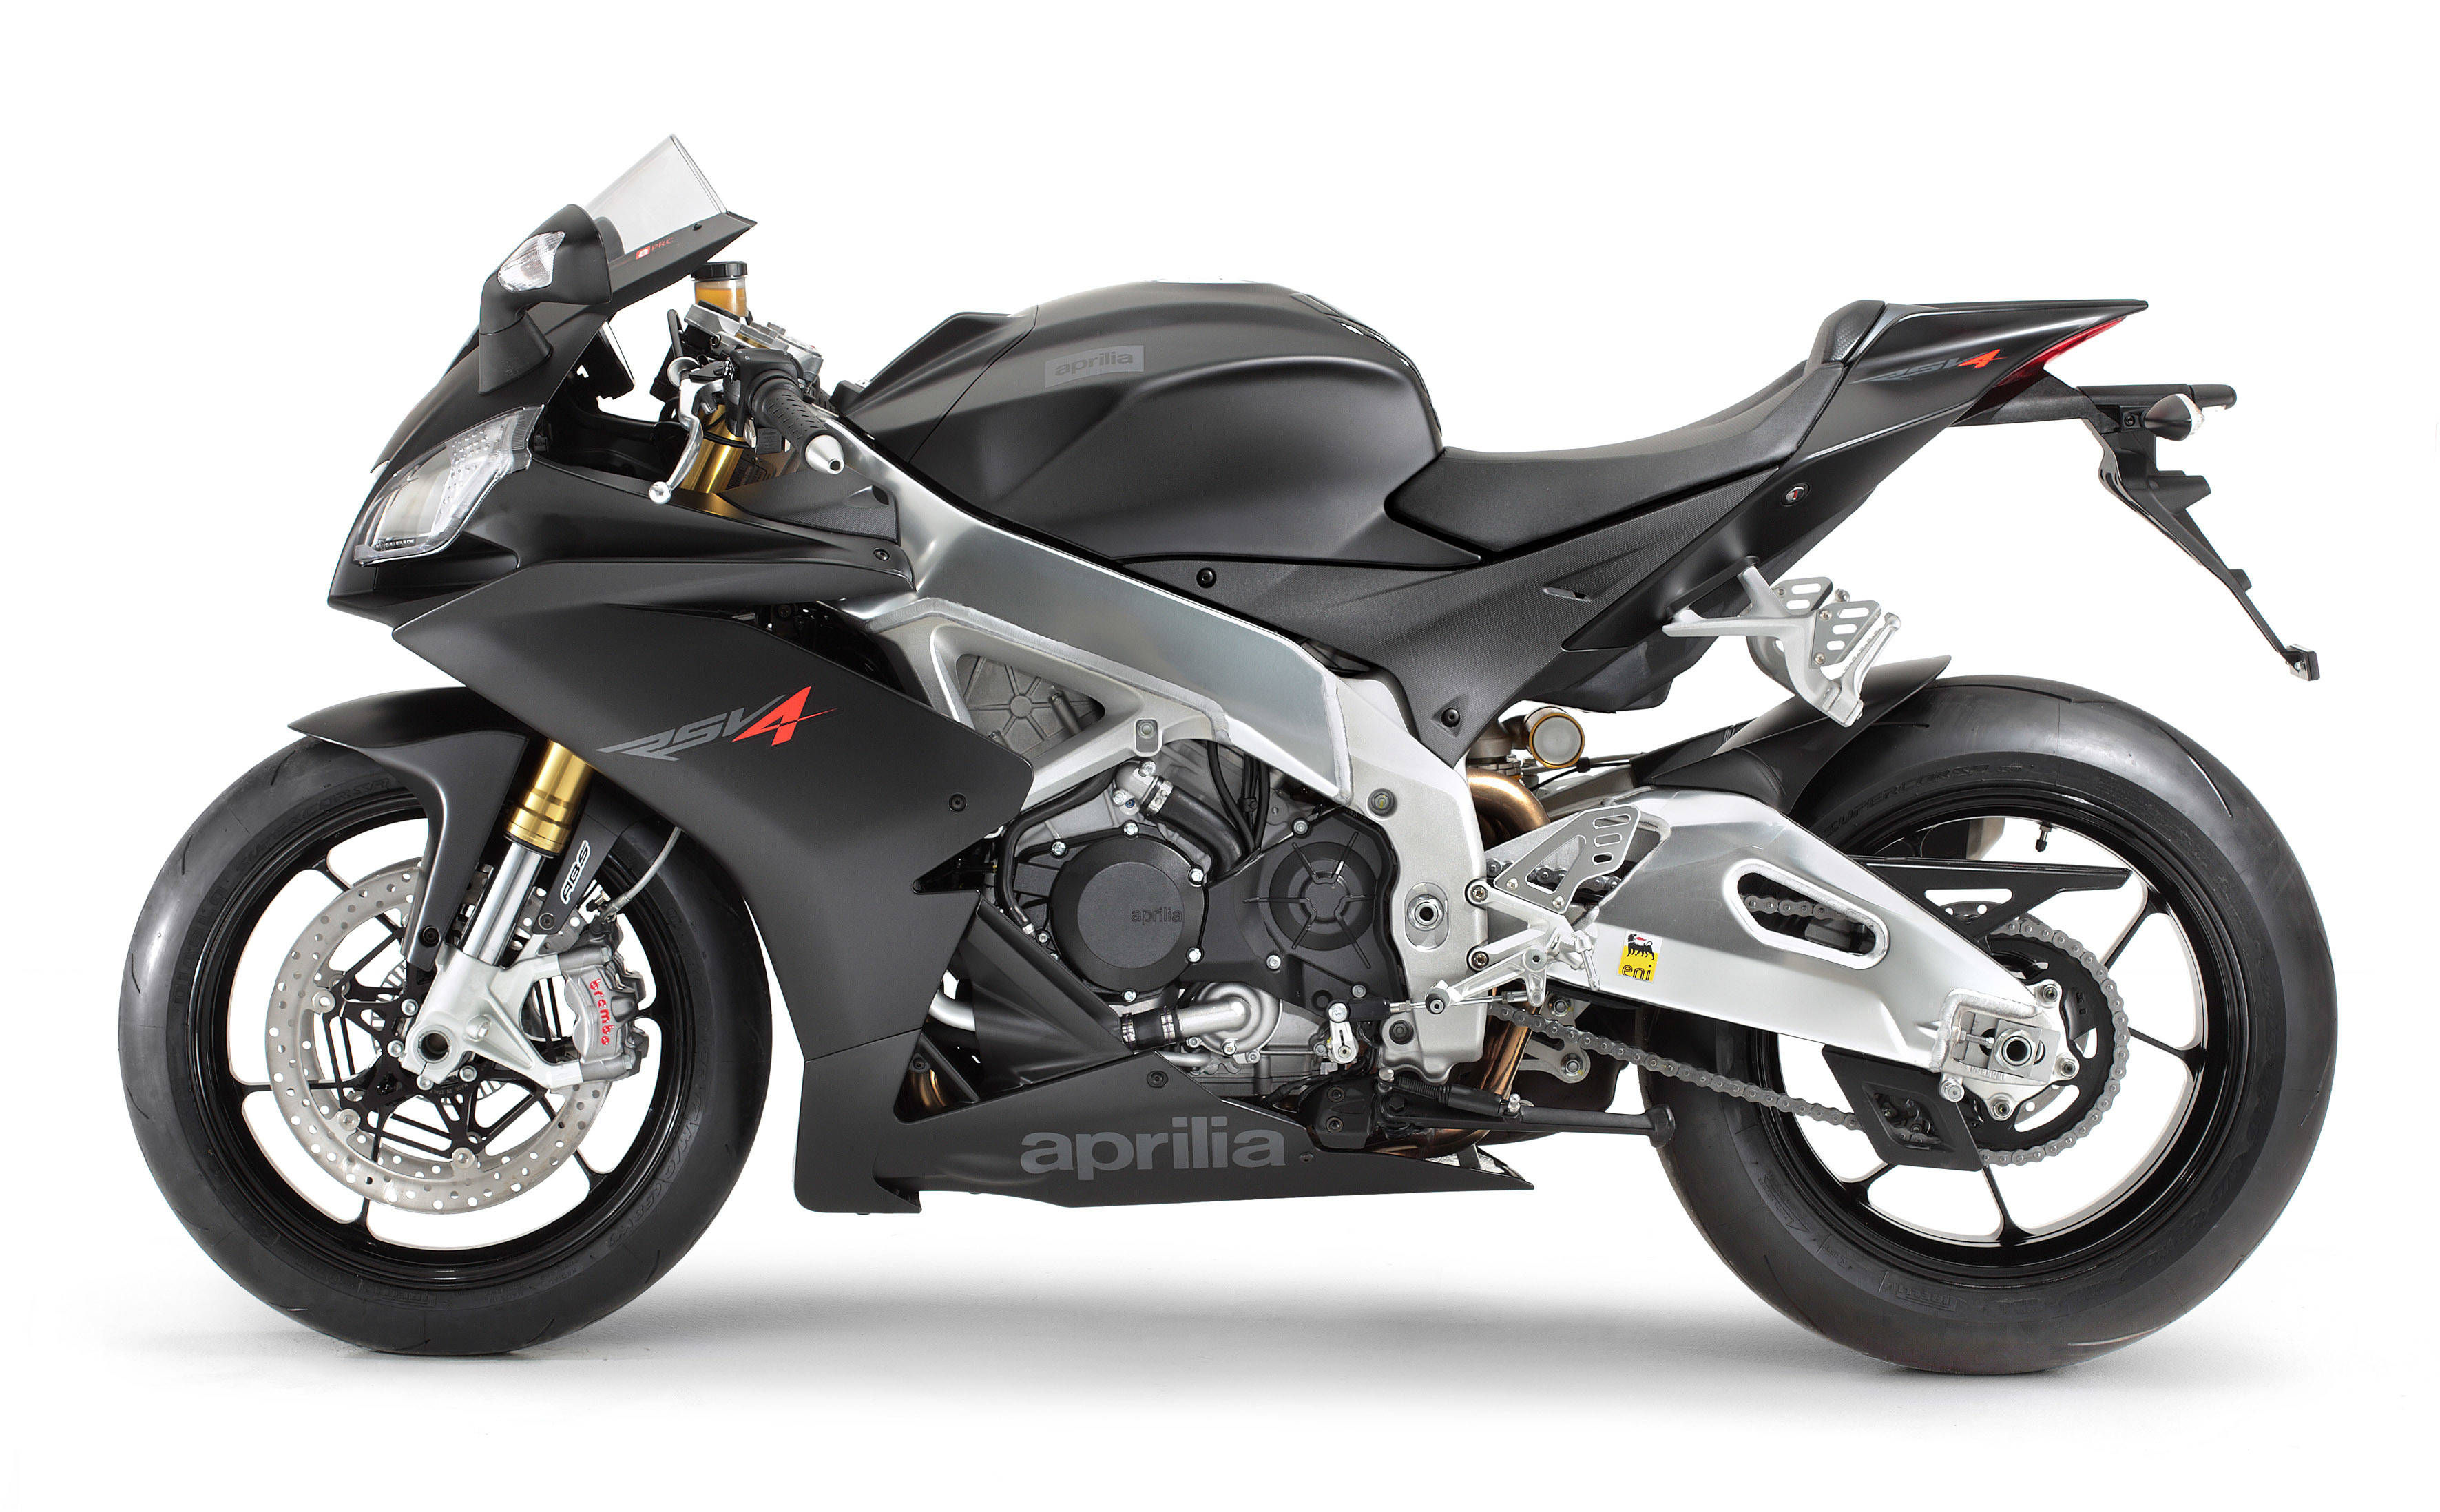 Aprilia Rsv4 Price Mileage Review Aprilia Bikes